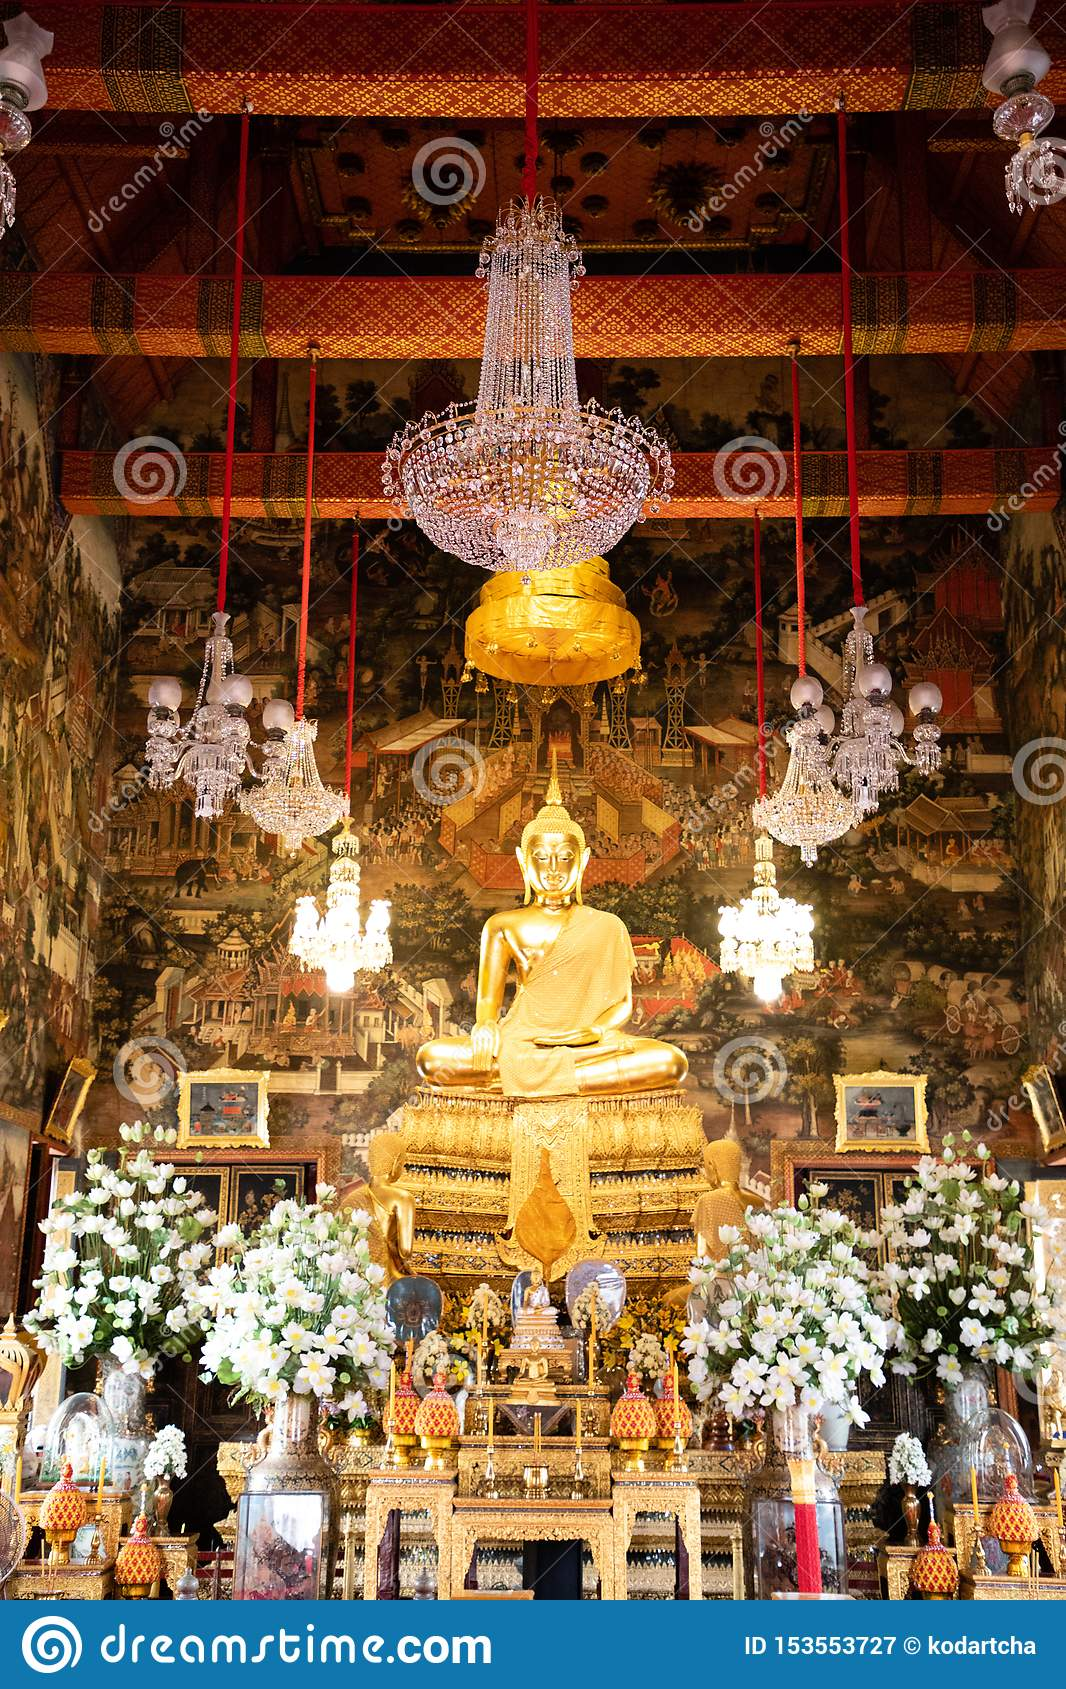 November 20th, 2018 - Bangkok THAILAND - Big golden Buddha surrounded by white orchids in thai temple